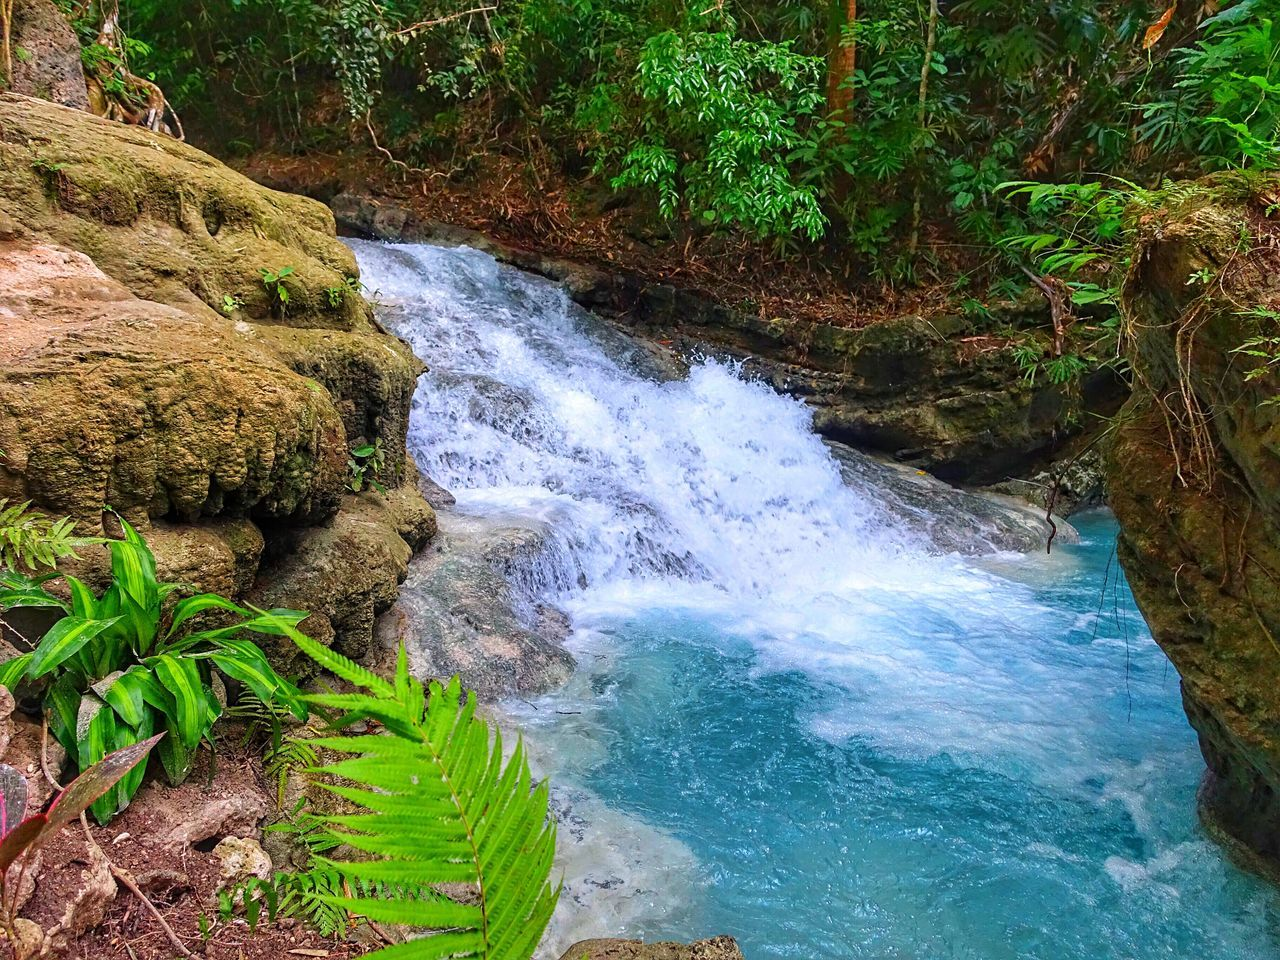 beauty in nature, nature, water, tranquil scene, river, scenics, forest, tranquility, no people, outdoors, day, waterfall, high angle view, green color, motion, tree, plant, growth